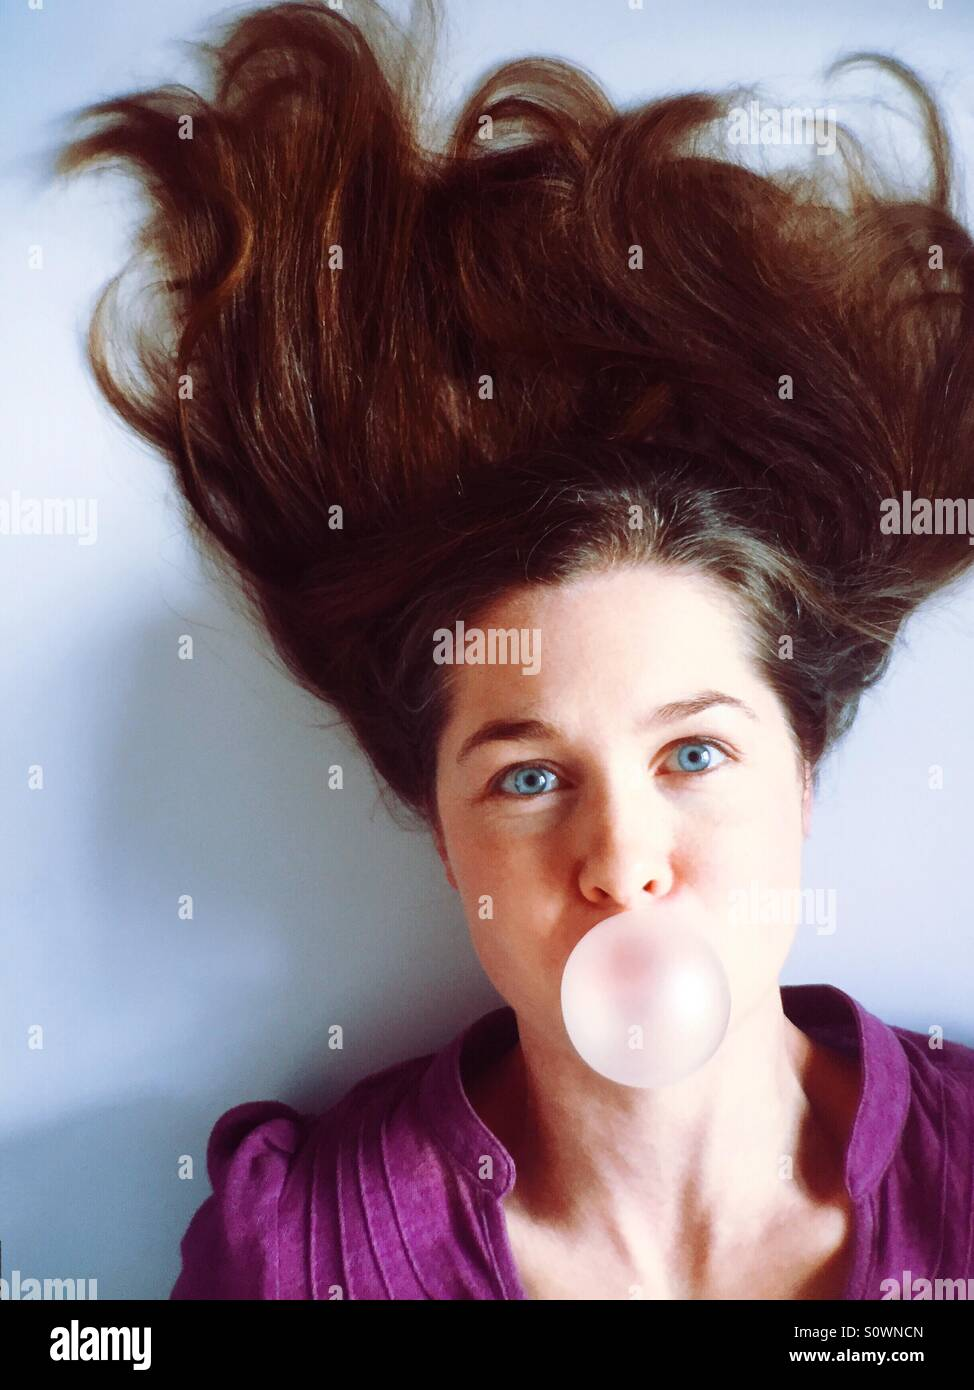 Woman with crazy hair blowing a bubble gum bubble Stock Photo